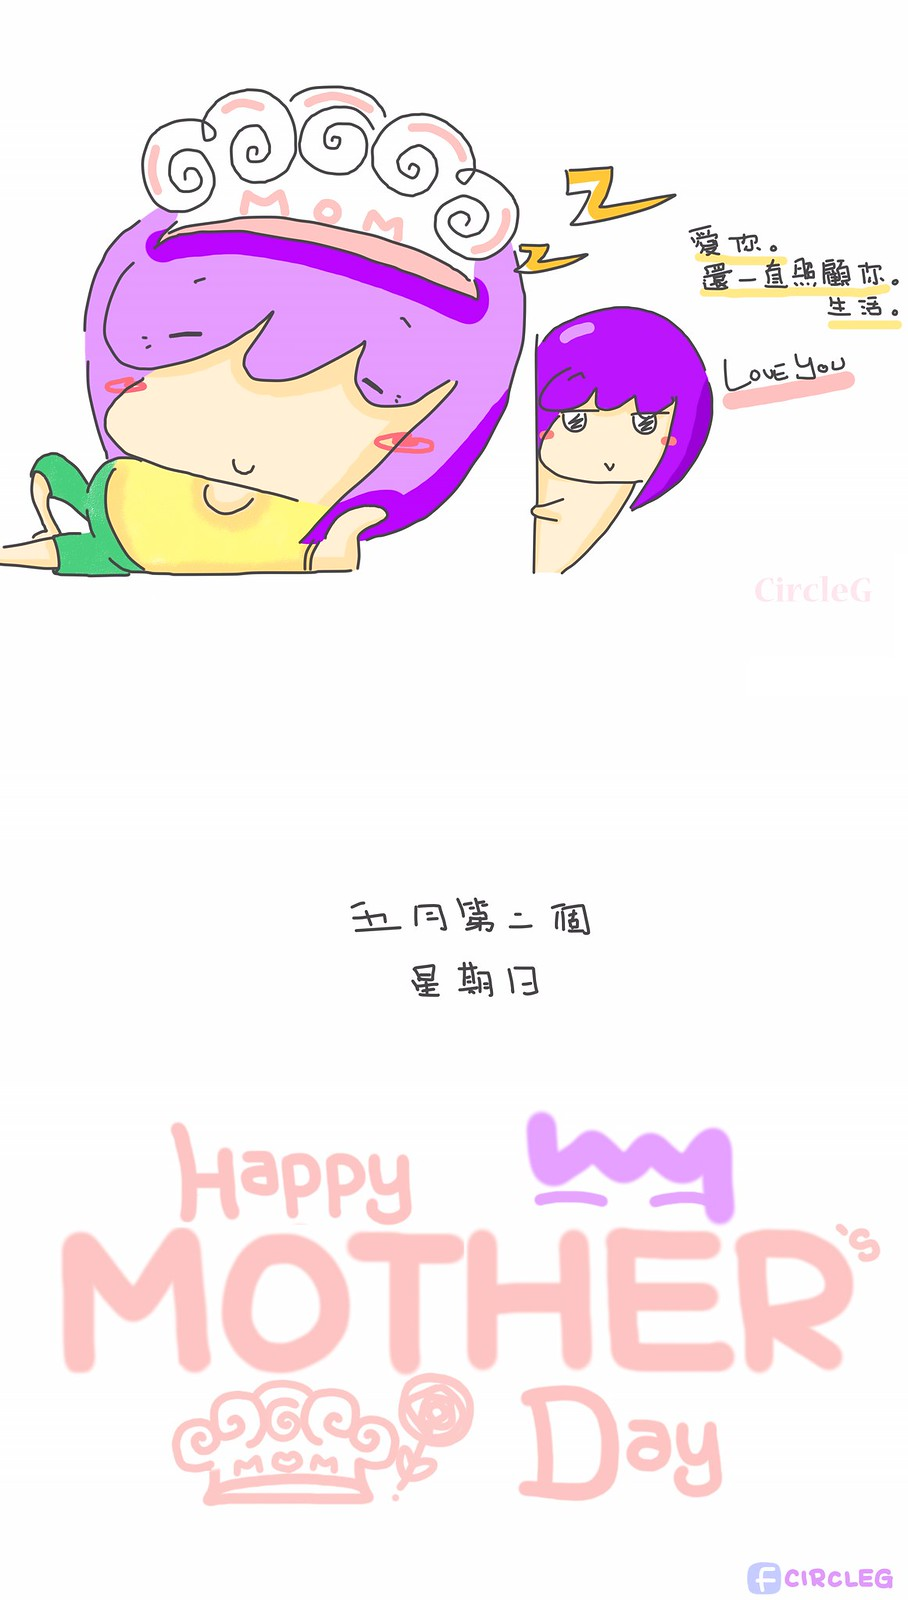 CIRCLEG 2015 Happy MOTHER's DAY 母親節 快樂 MAMA 媽媽 THANKSFUL STORY (10)